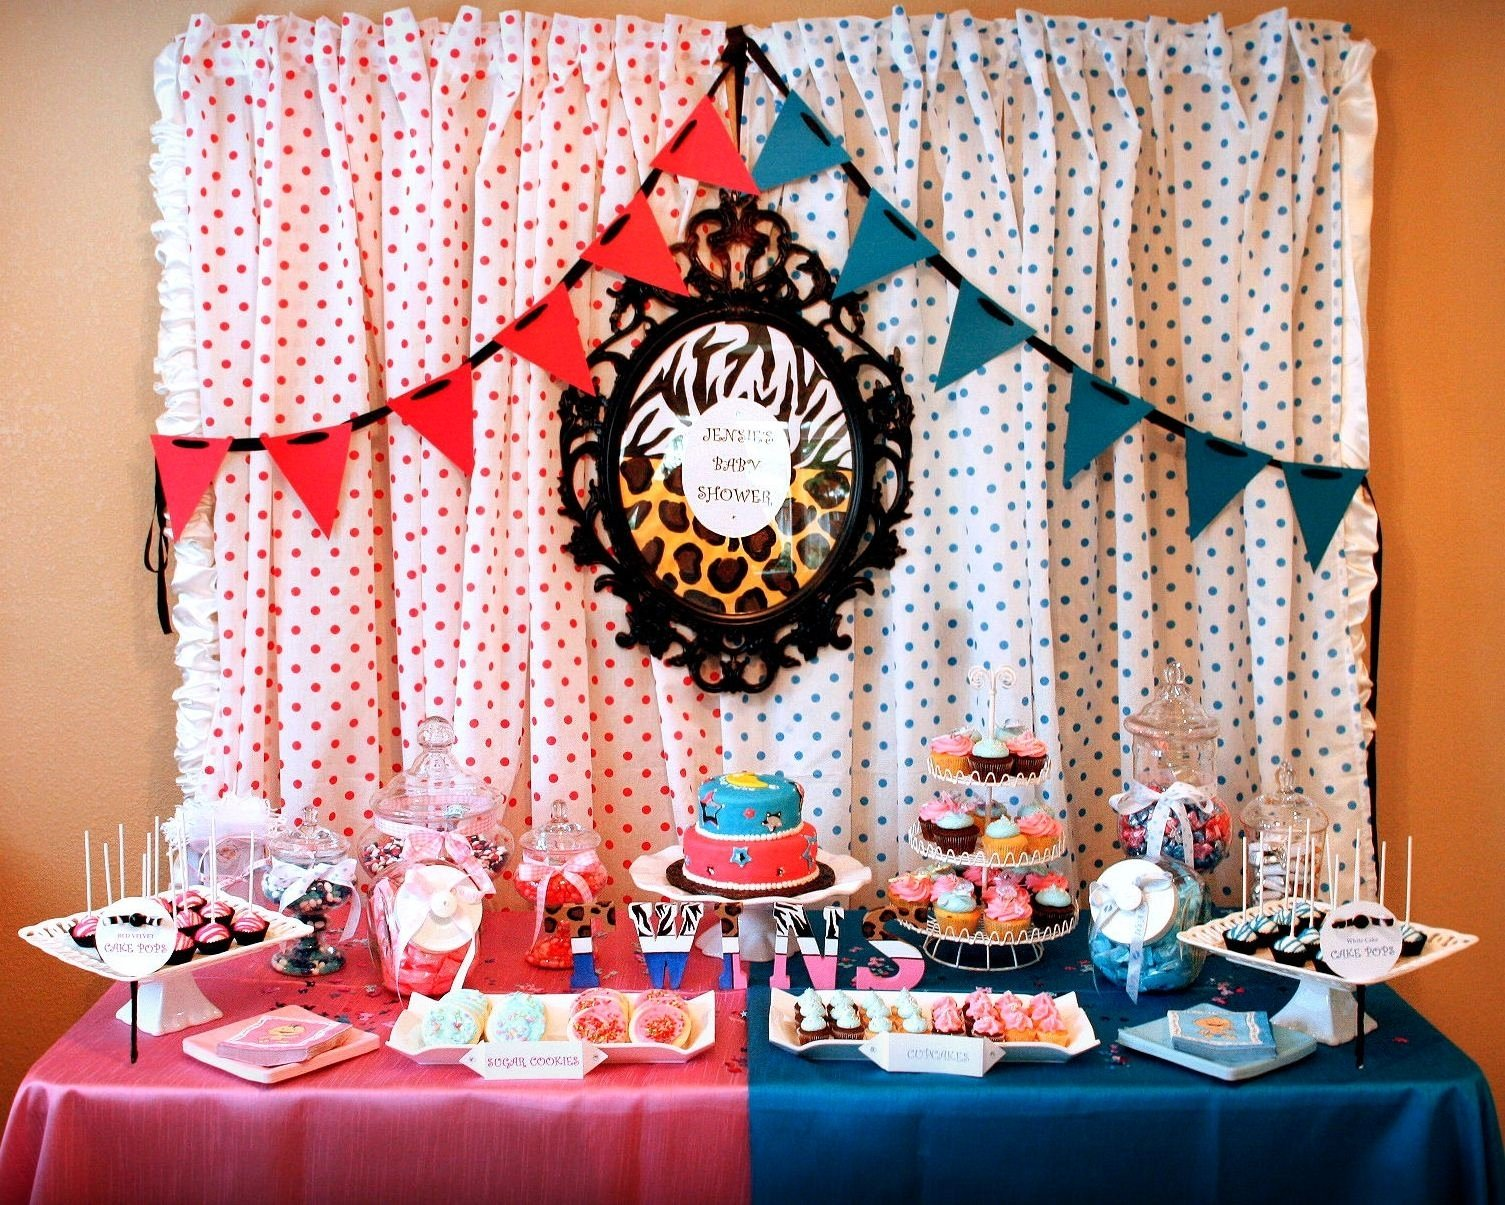 10 Fashionable Baby Shower For Twins Ideas